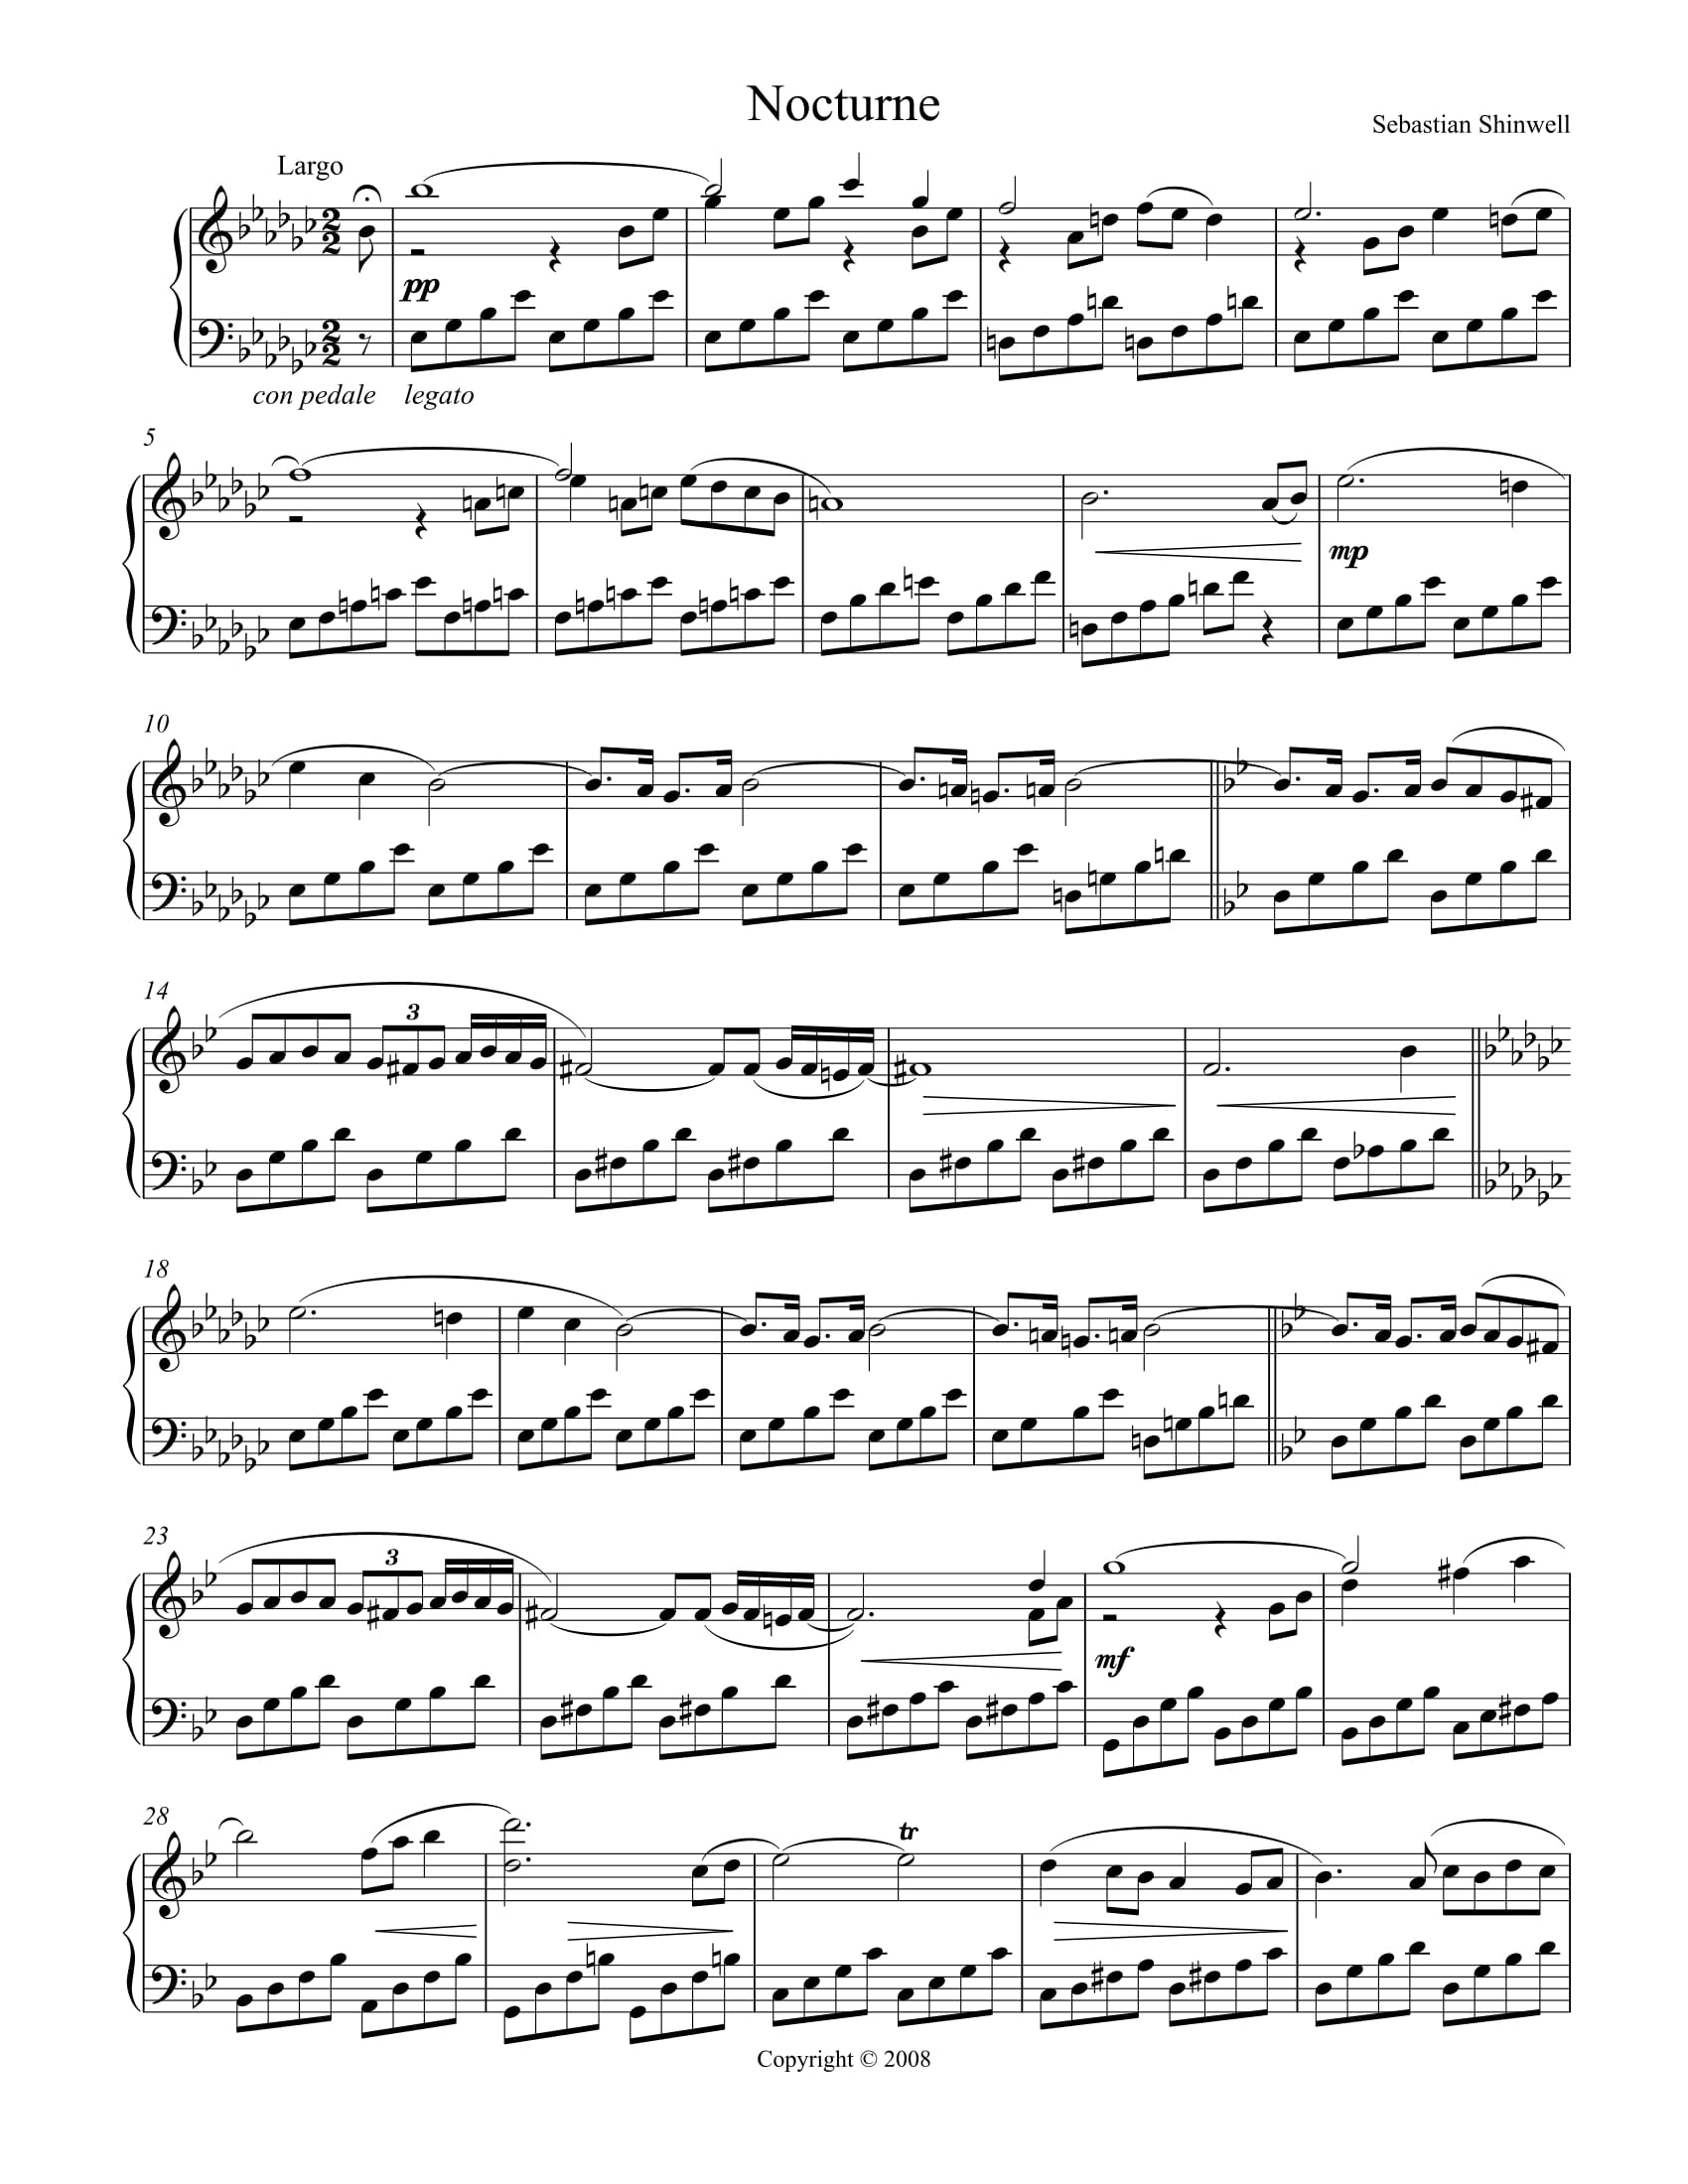 Nocturne In E-flat Minor-1.jpg